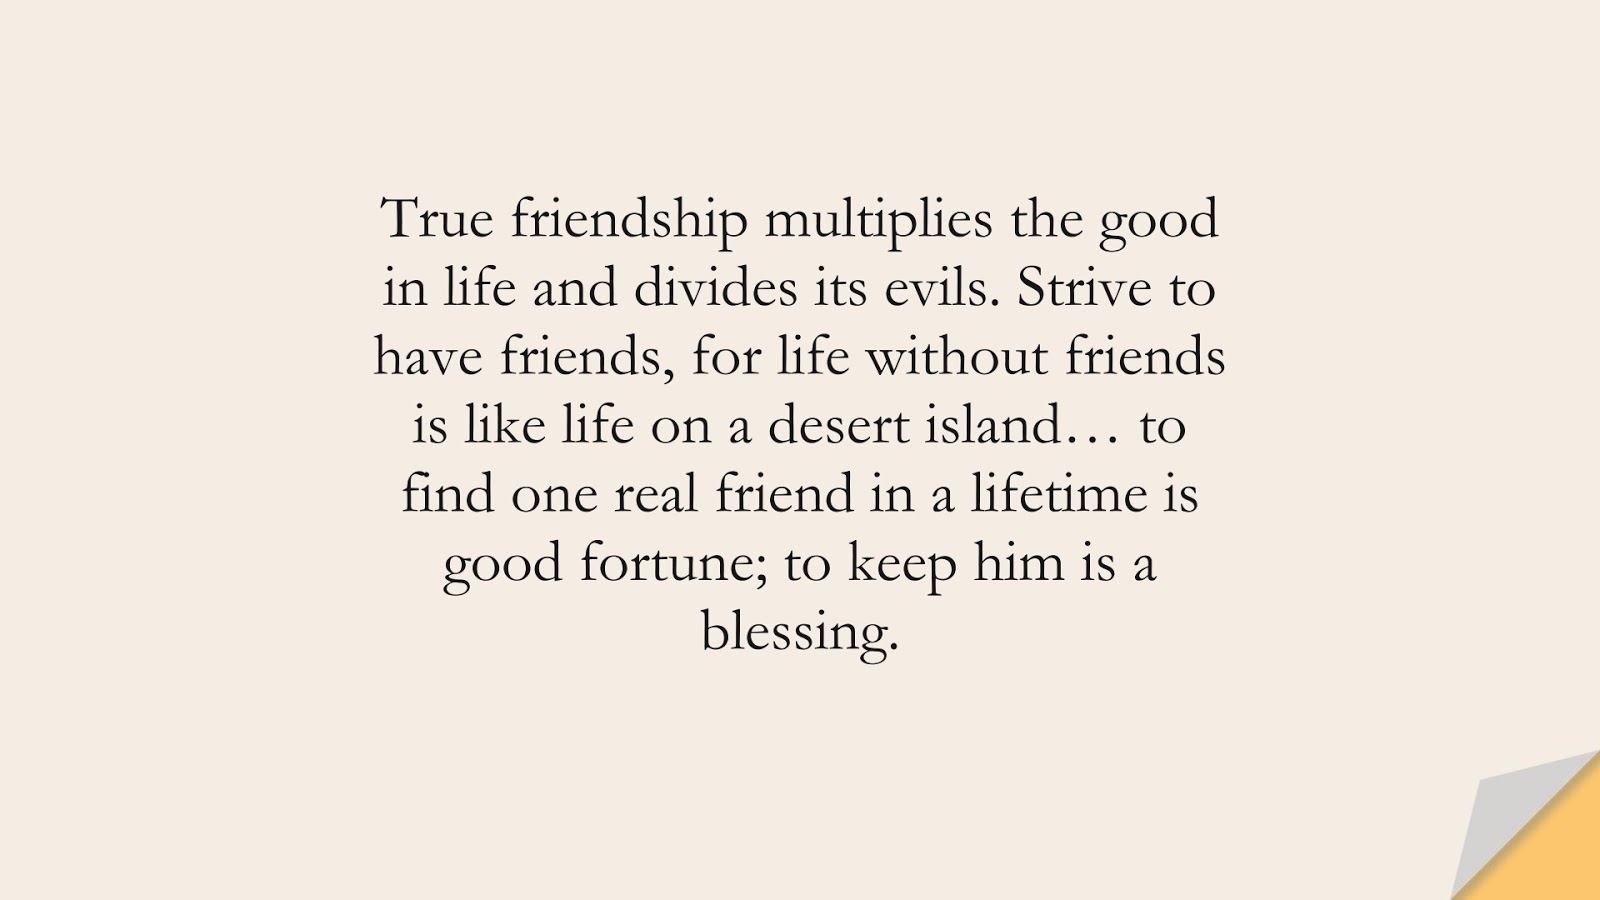 True friendship multiplies the good in life and divides its evils. Strive to have friends, for life without friends is like life on a desert island… to find one real friend in a lifetime is good fortune; to keep him is a blessing.FALSE